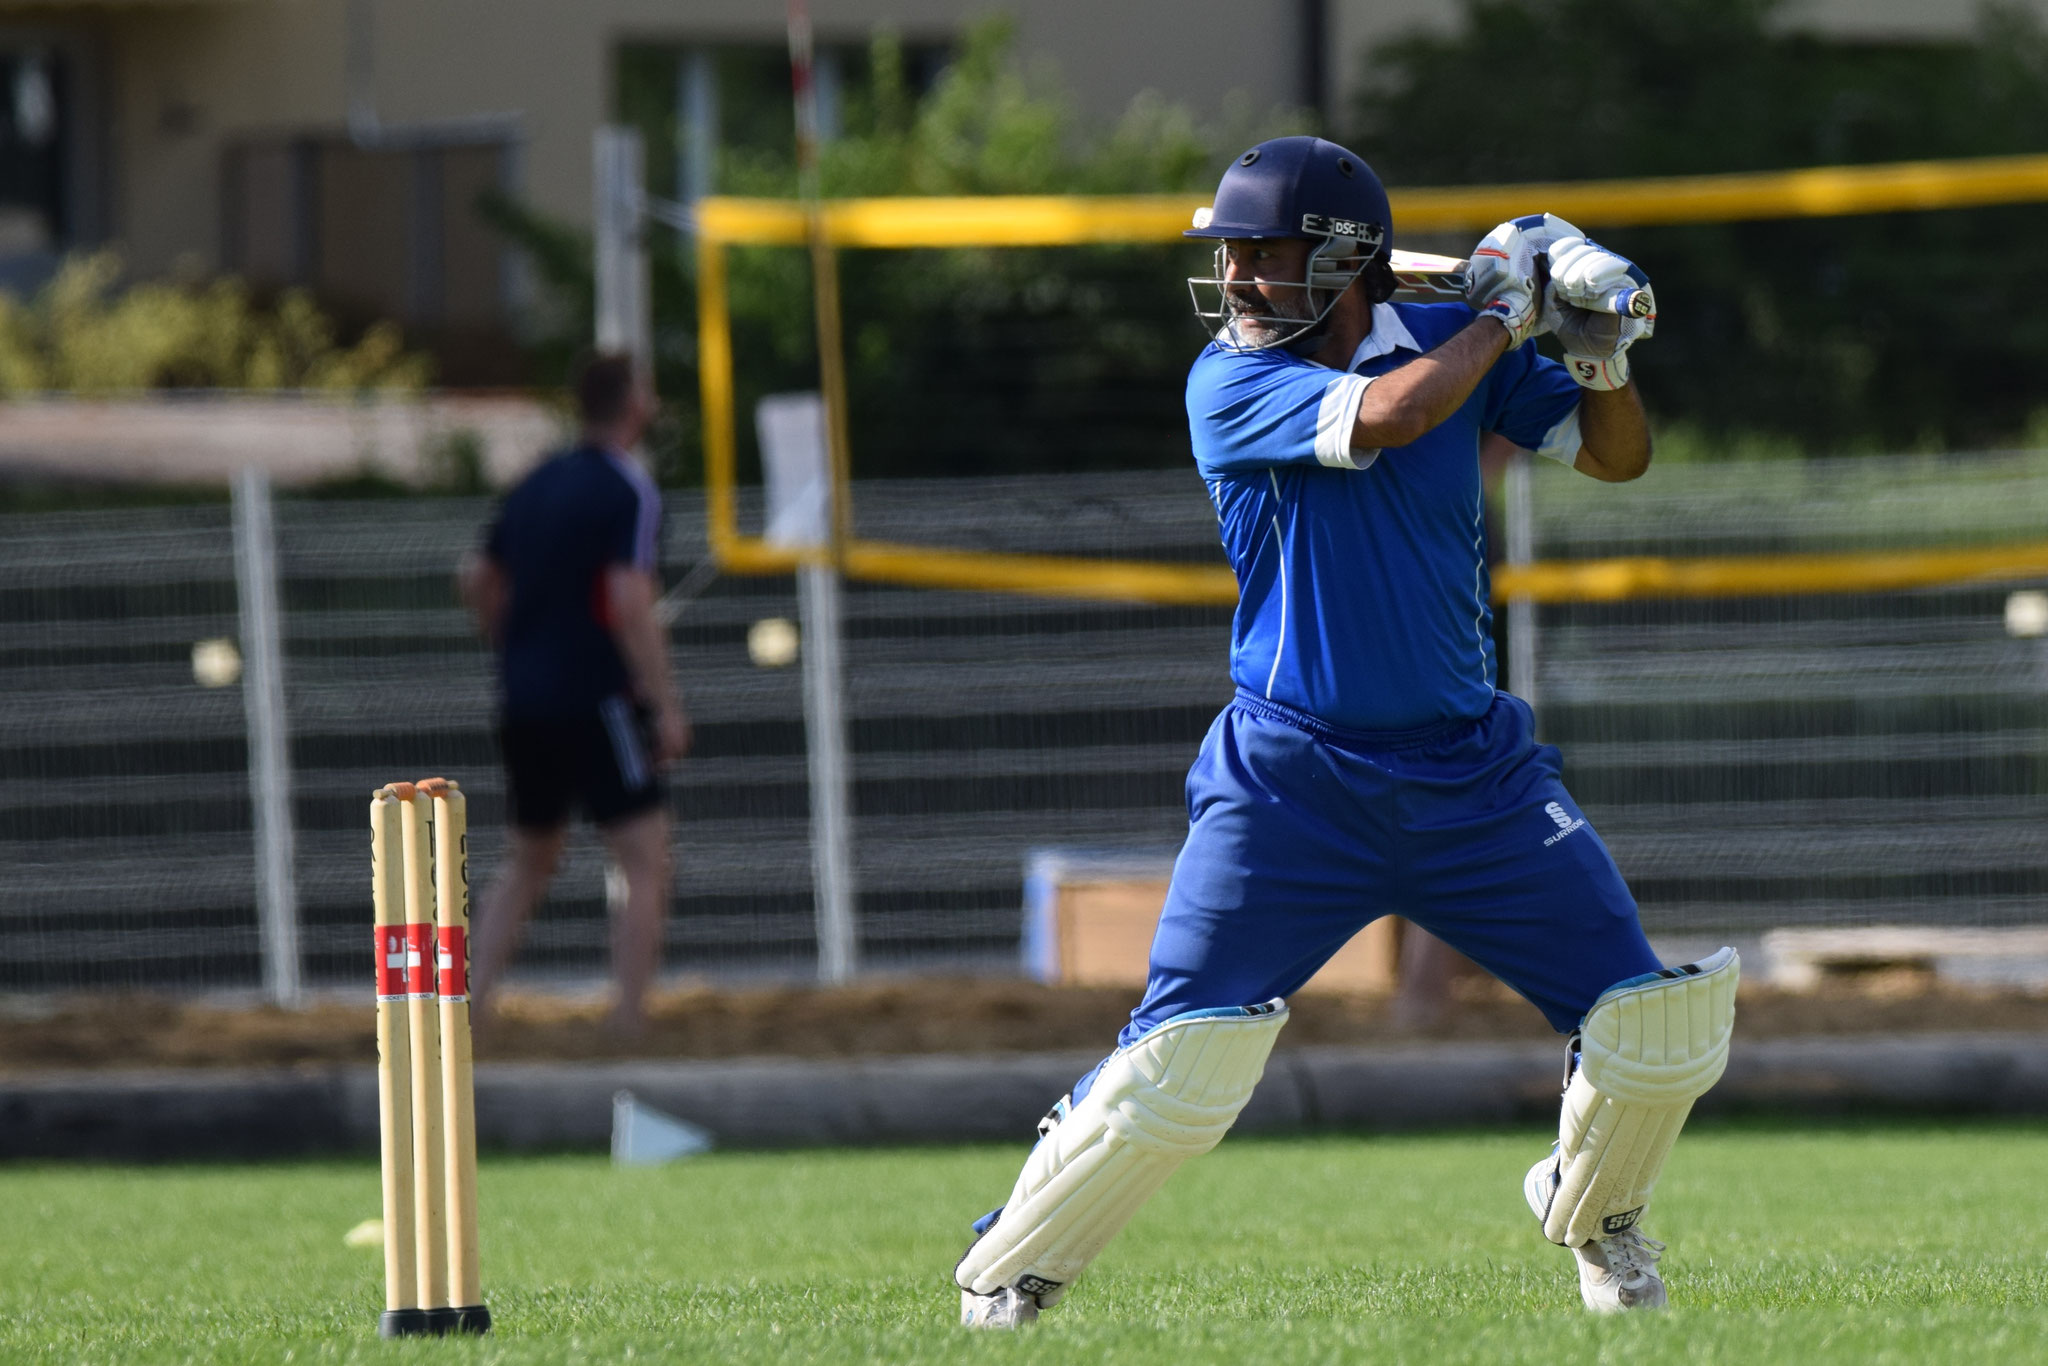 Baljit's 50 runs off 40 balls were a joy to watch. He was caught just 6 runs later.